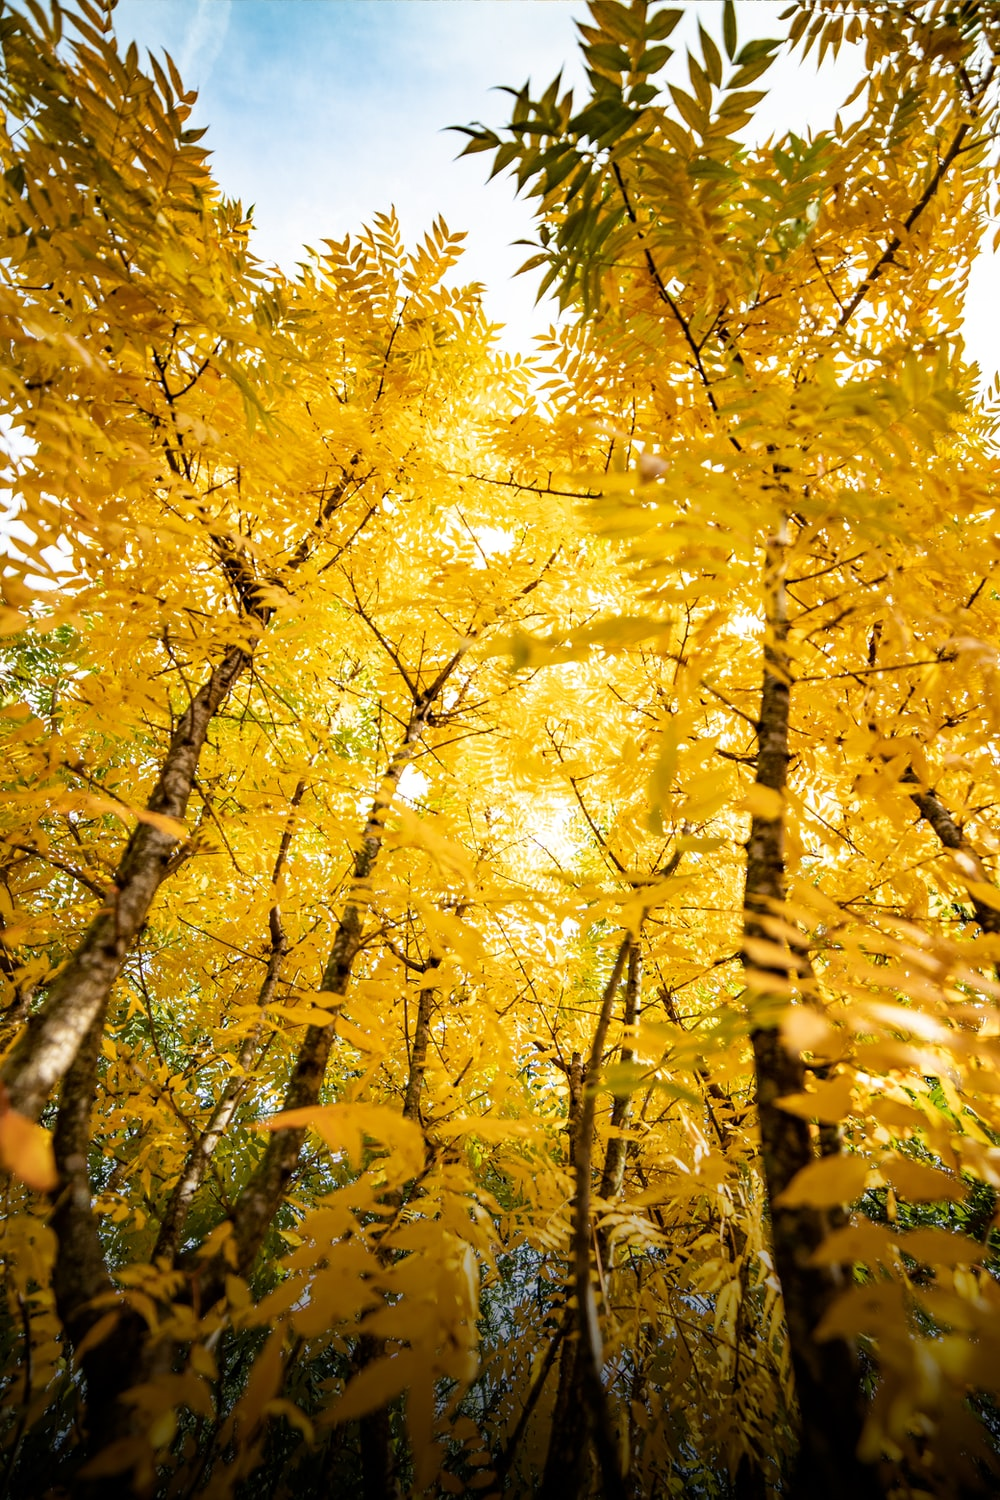 low angle photography of yellow-leafed trees